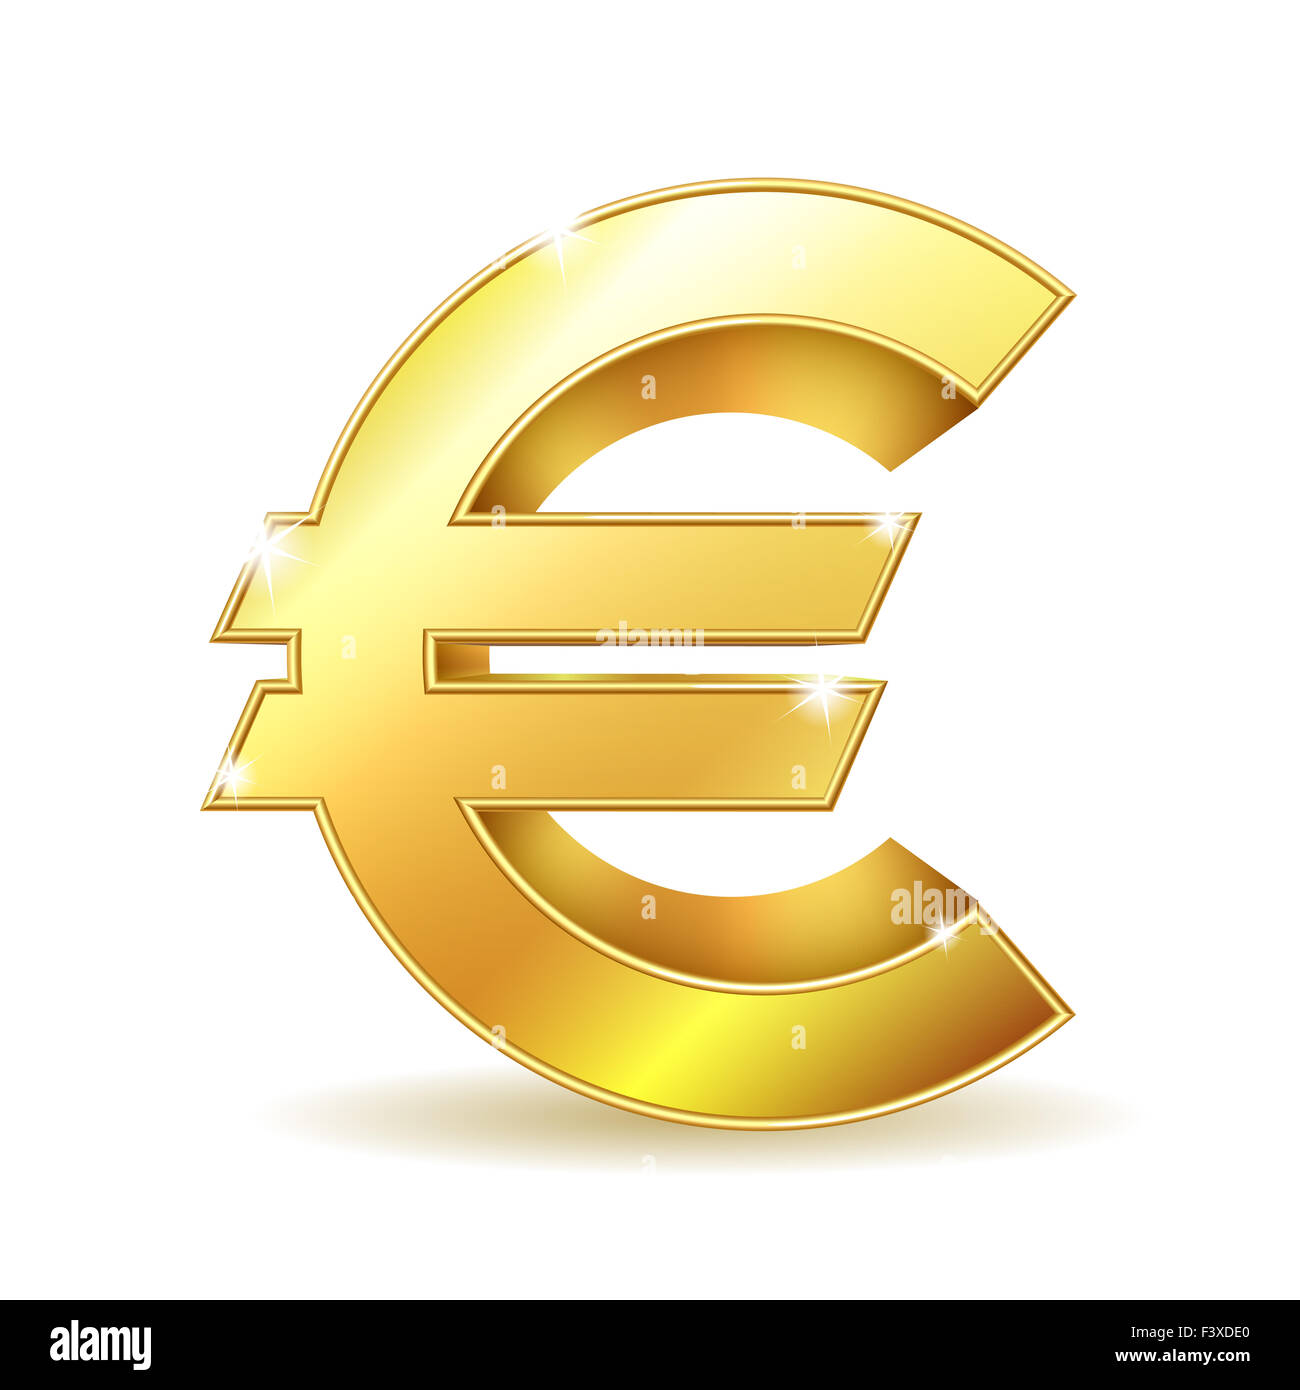 Gold sign euro currency. - Stock Image